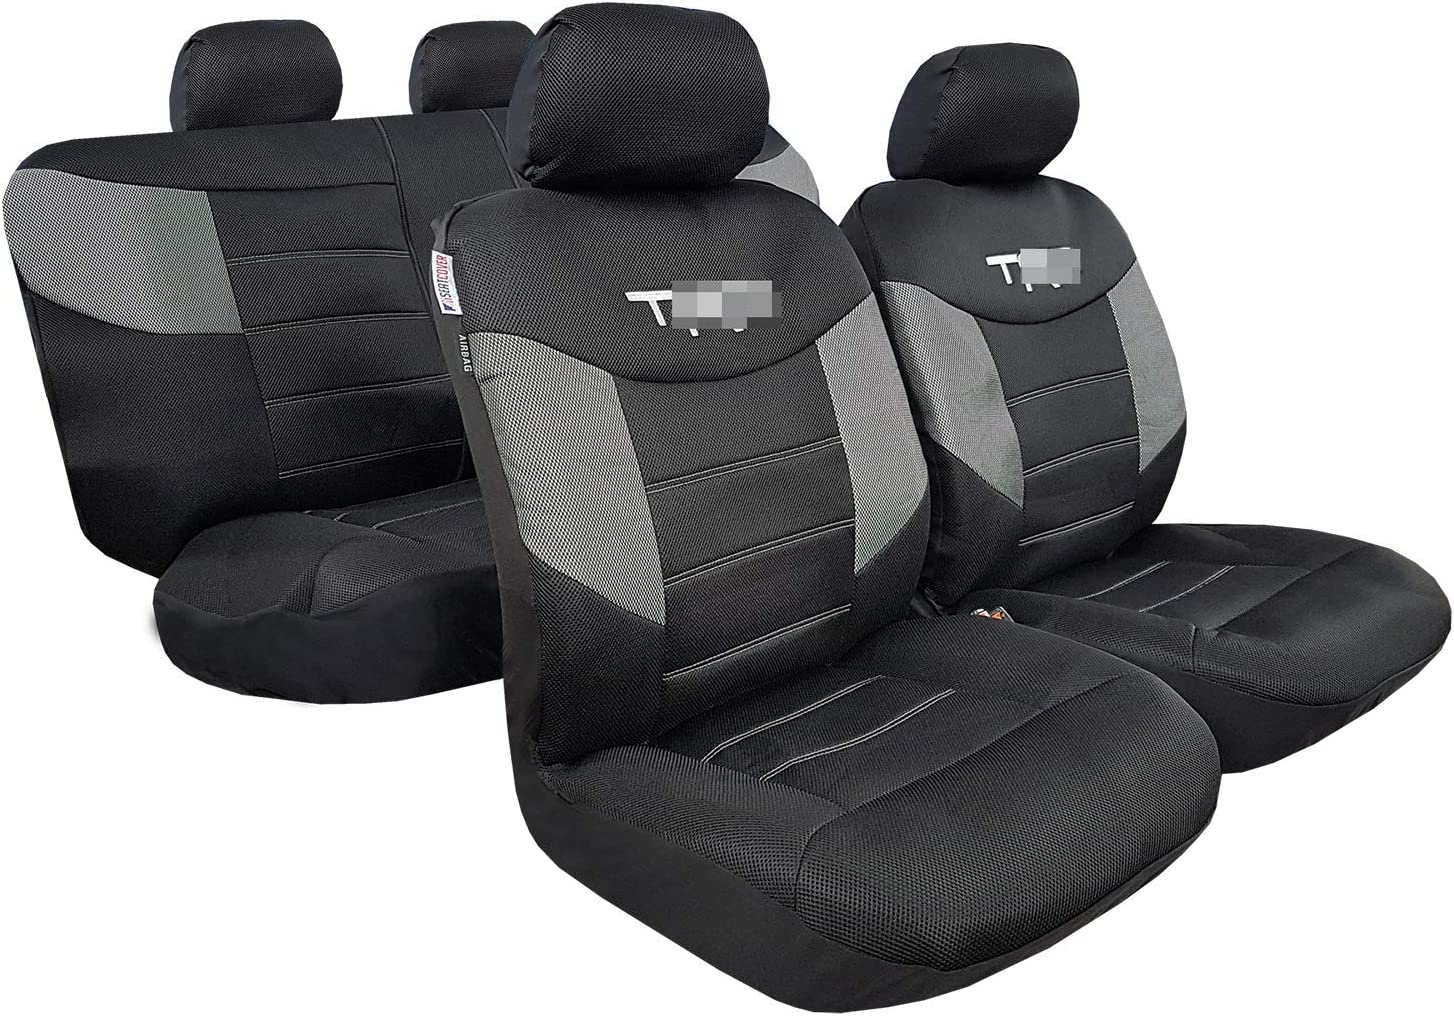 ITAILORMAKER Free Shipping Cheap Bargain Gift Black Truck Seat Covers Nicely for Bargain Front Cars Fit B